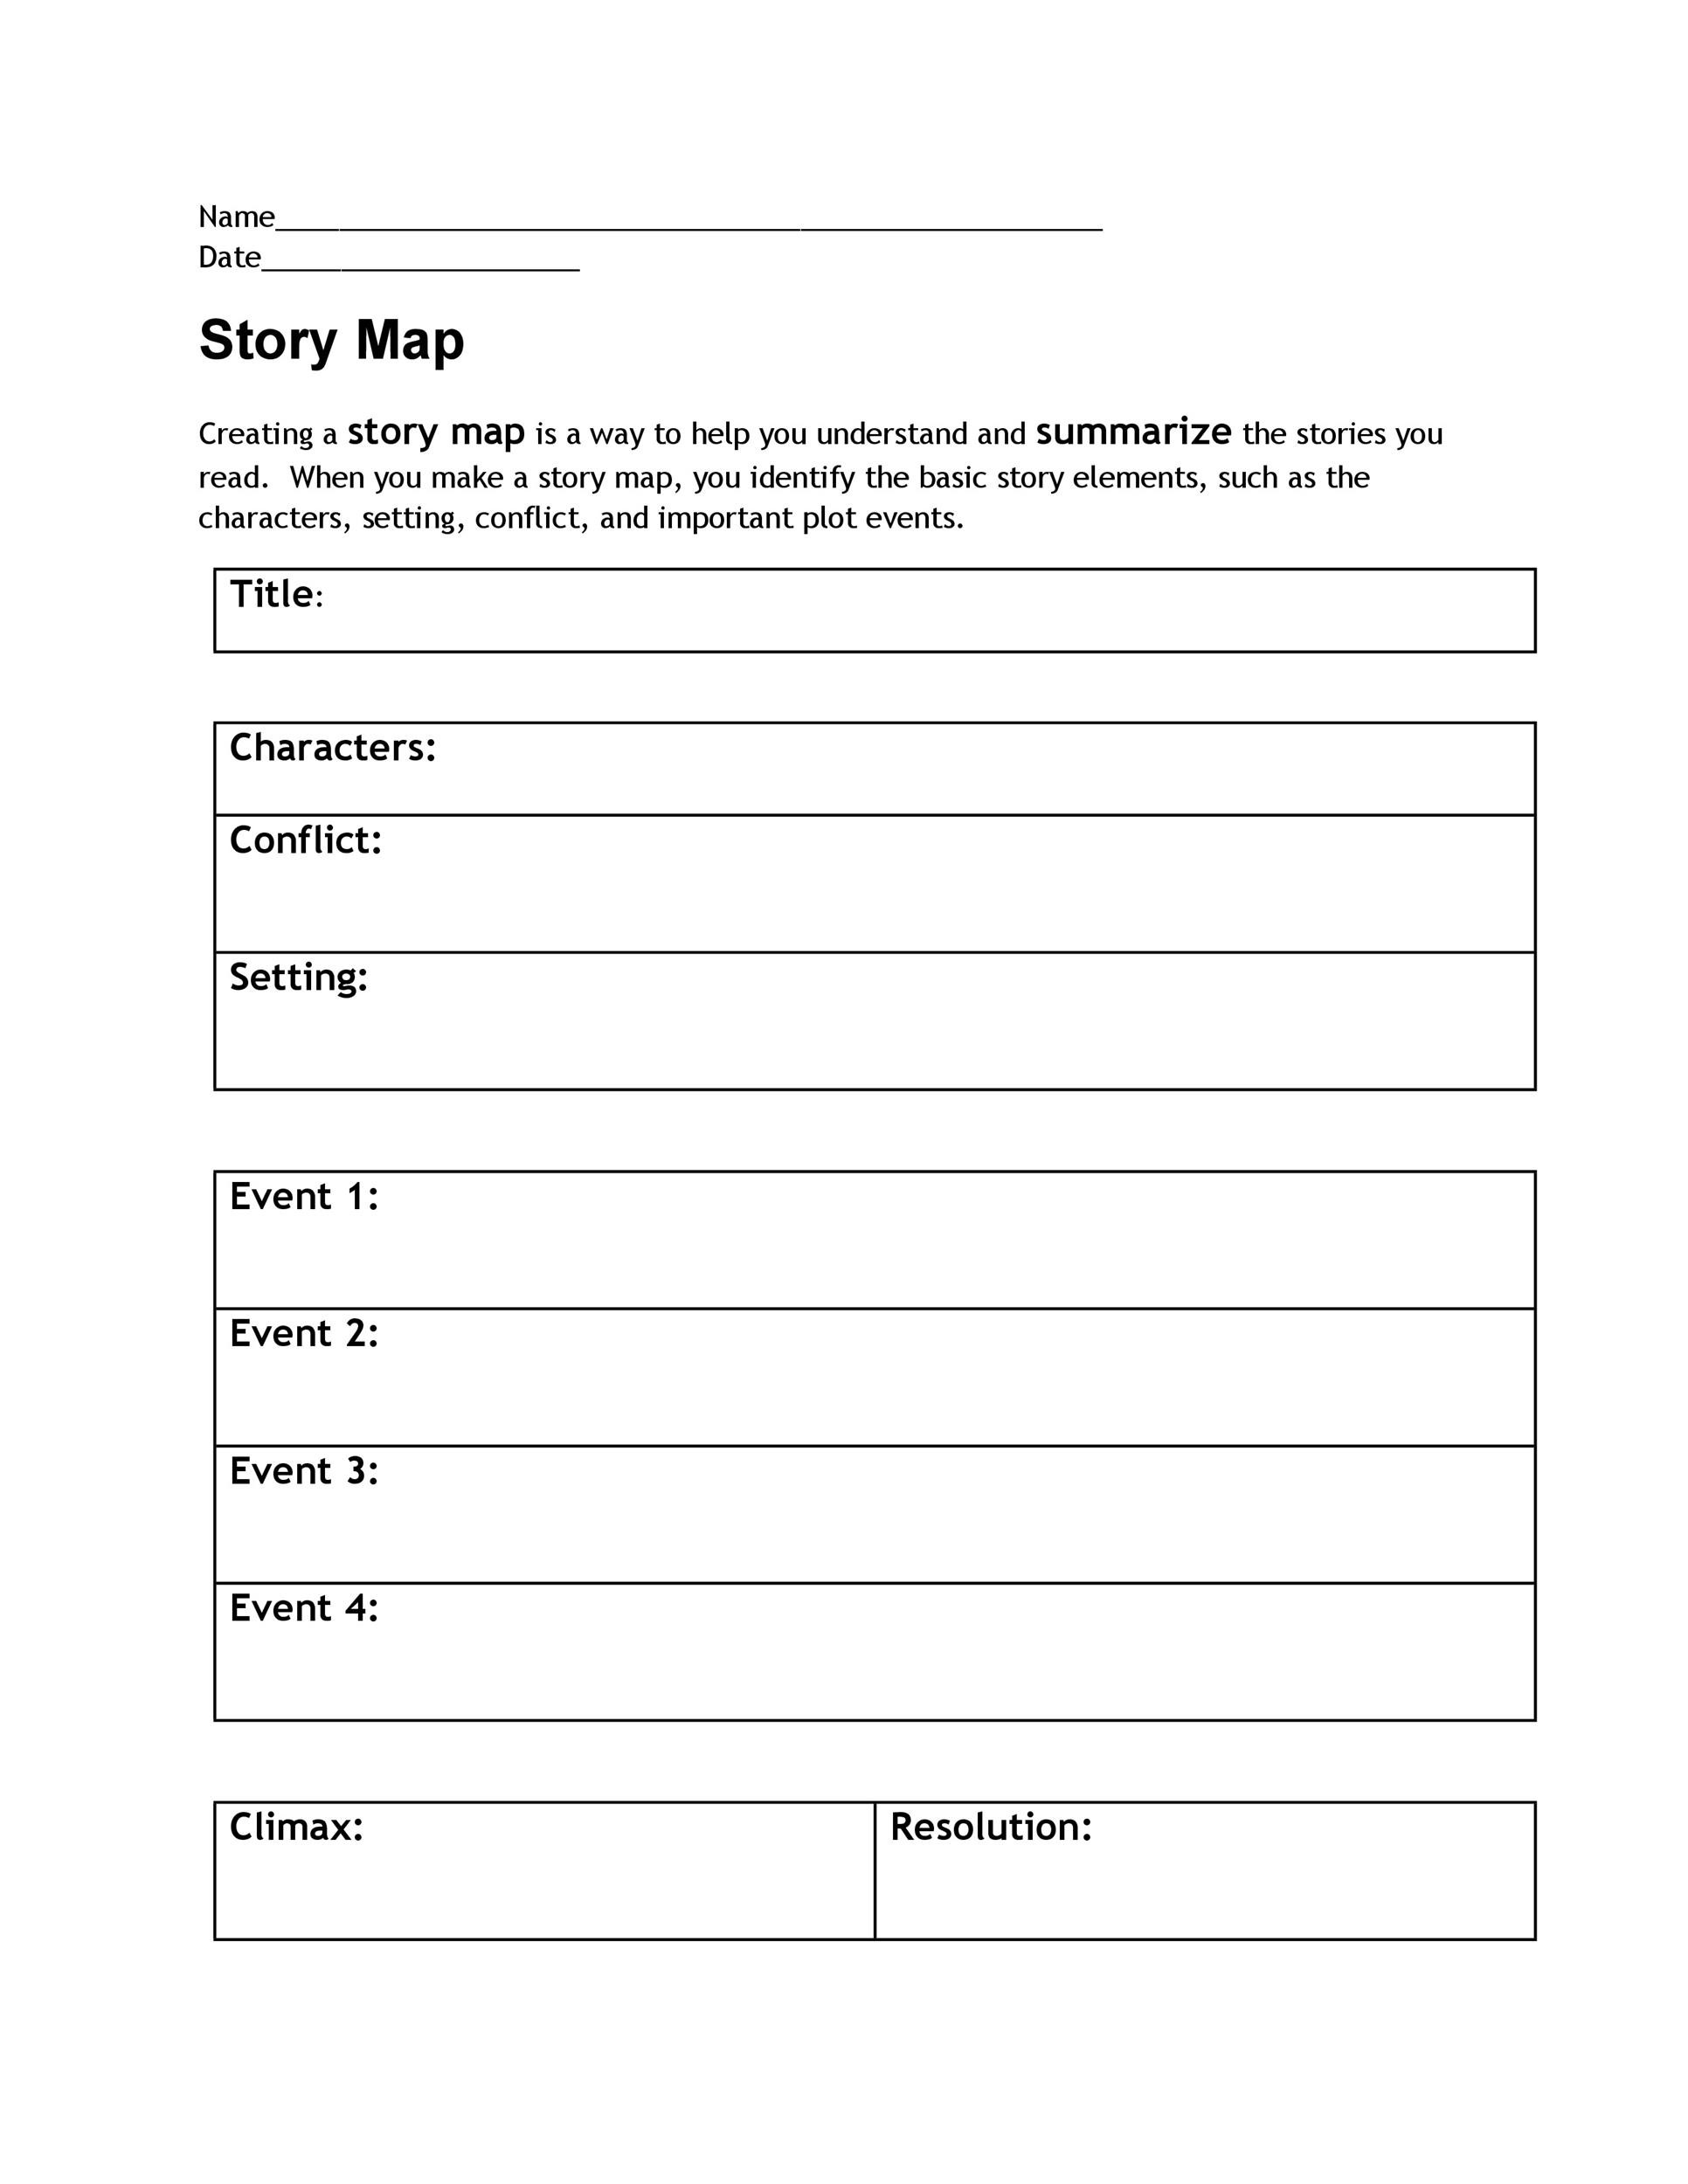 photograph regarding Story Map Template Printable called 41 Totally free Printable Tale Map Templates [PDF / Term] ᐅ